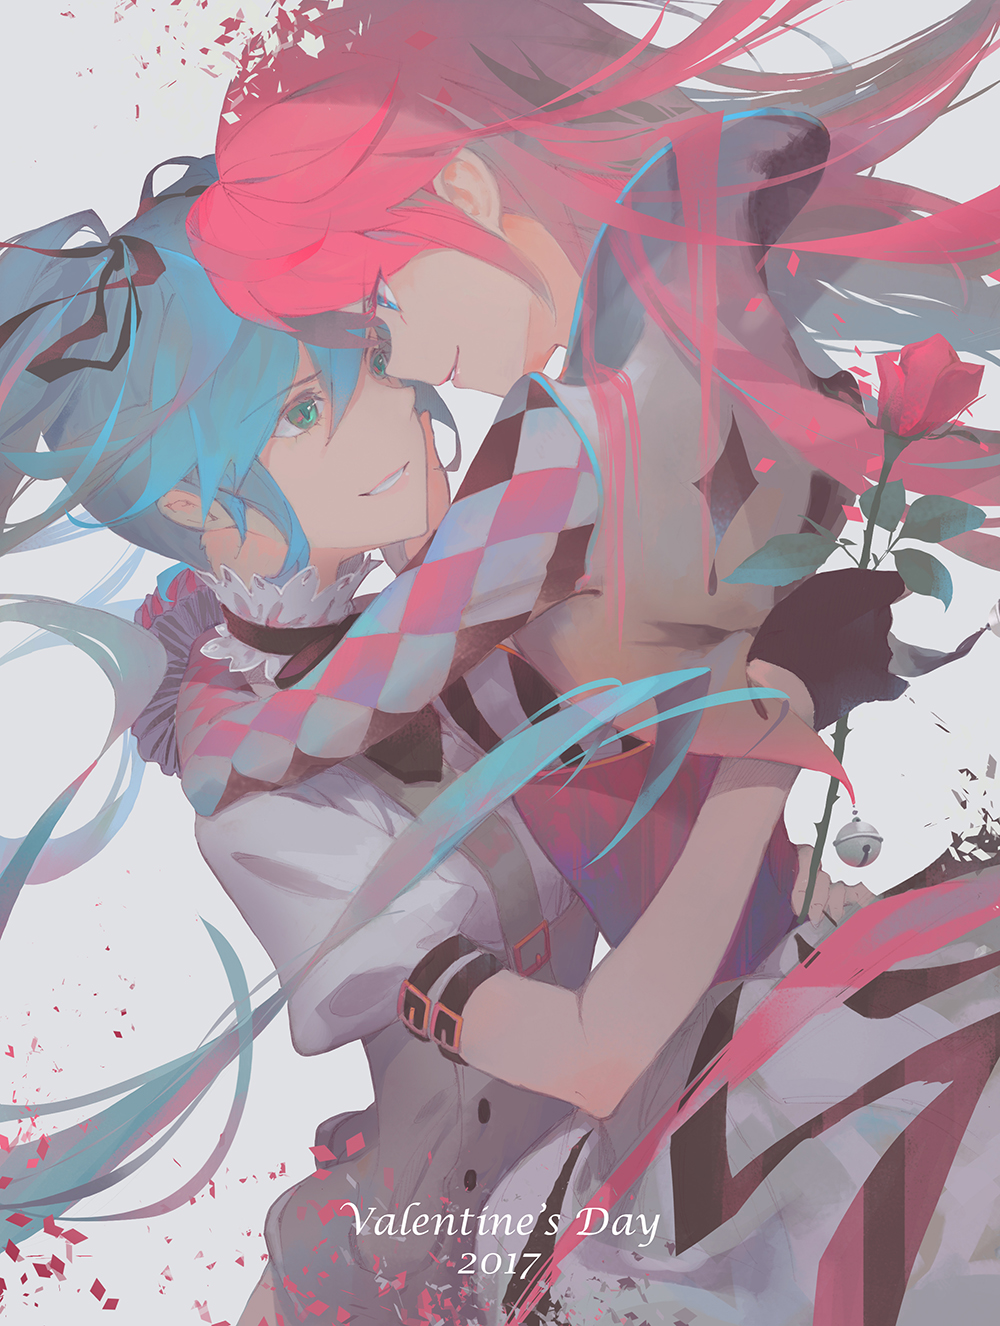 2017 2girls aqua_hair argyle_sleeves arms_around_back arms_around_neck bell black_ribbon blue_eyes buttons carrying collar commentary dress edakai flower forehead-to-forehead frilled_collar frills green_eyes hair_ribbon hatsune_miku highres holding holding_flower jacket lipstick long_hair looking_at_another makeup megurine_luka multiple_girls open_mouth pink_hair puffy_sleeves ribbon rose short_sleeves smile straight_hair twintails valentine very_long_hair vocaloid white_dress yuri